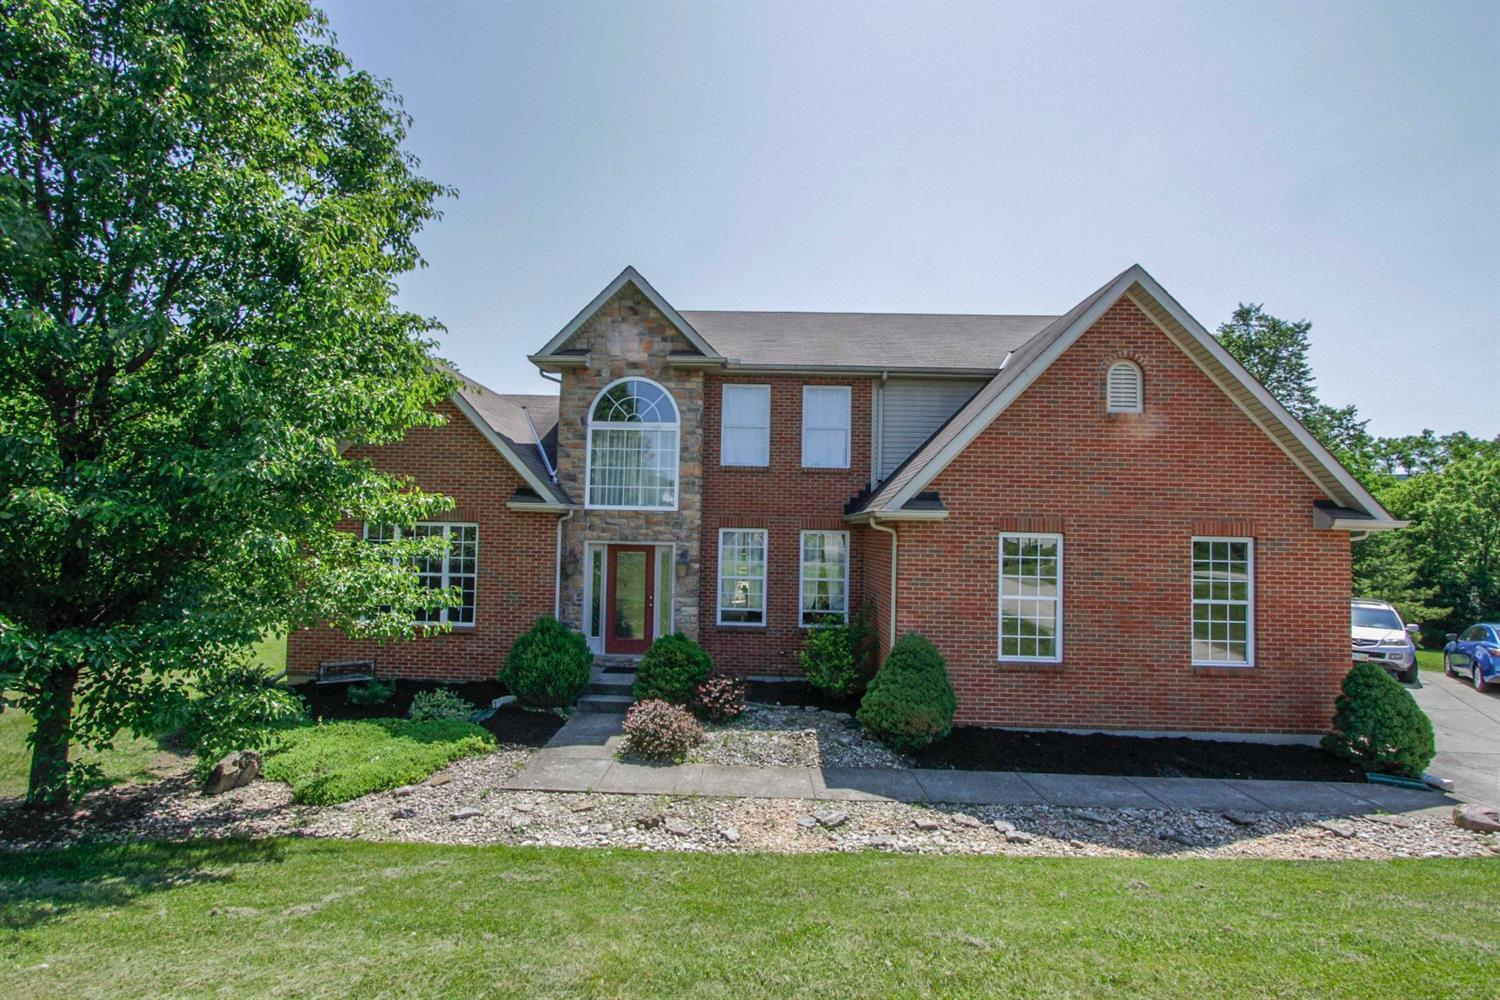 8680 Kates Way, West Chester, OH 45069